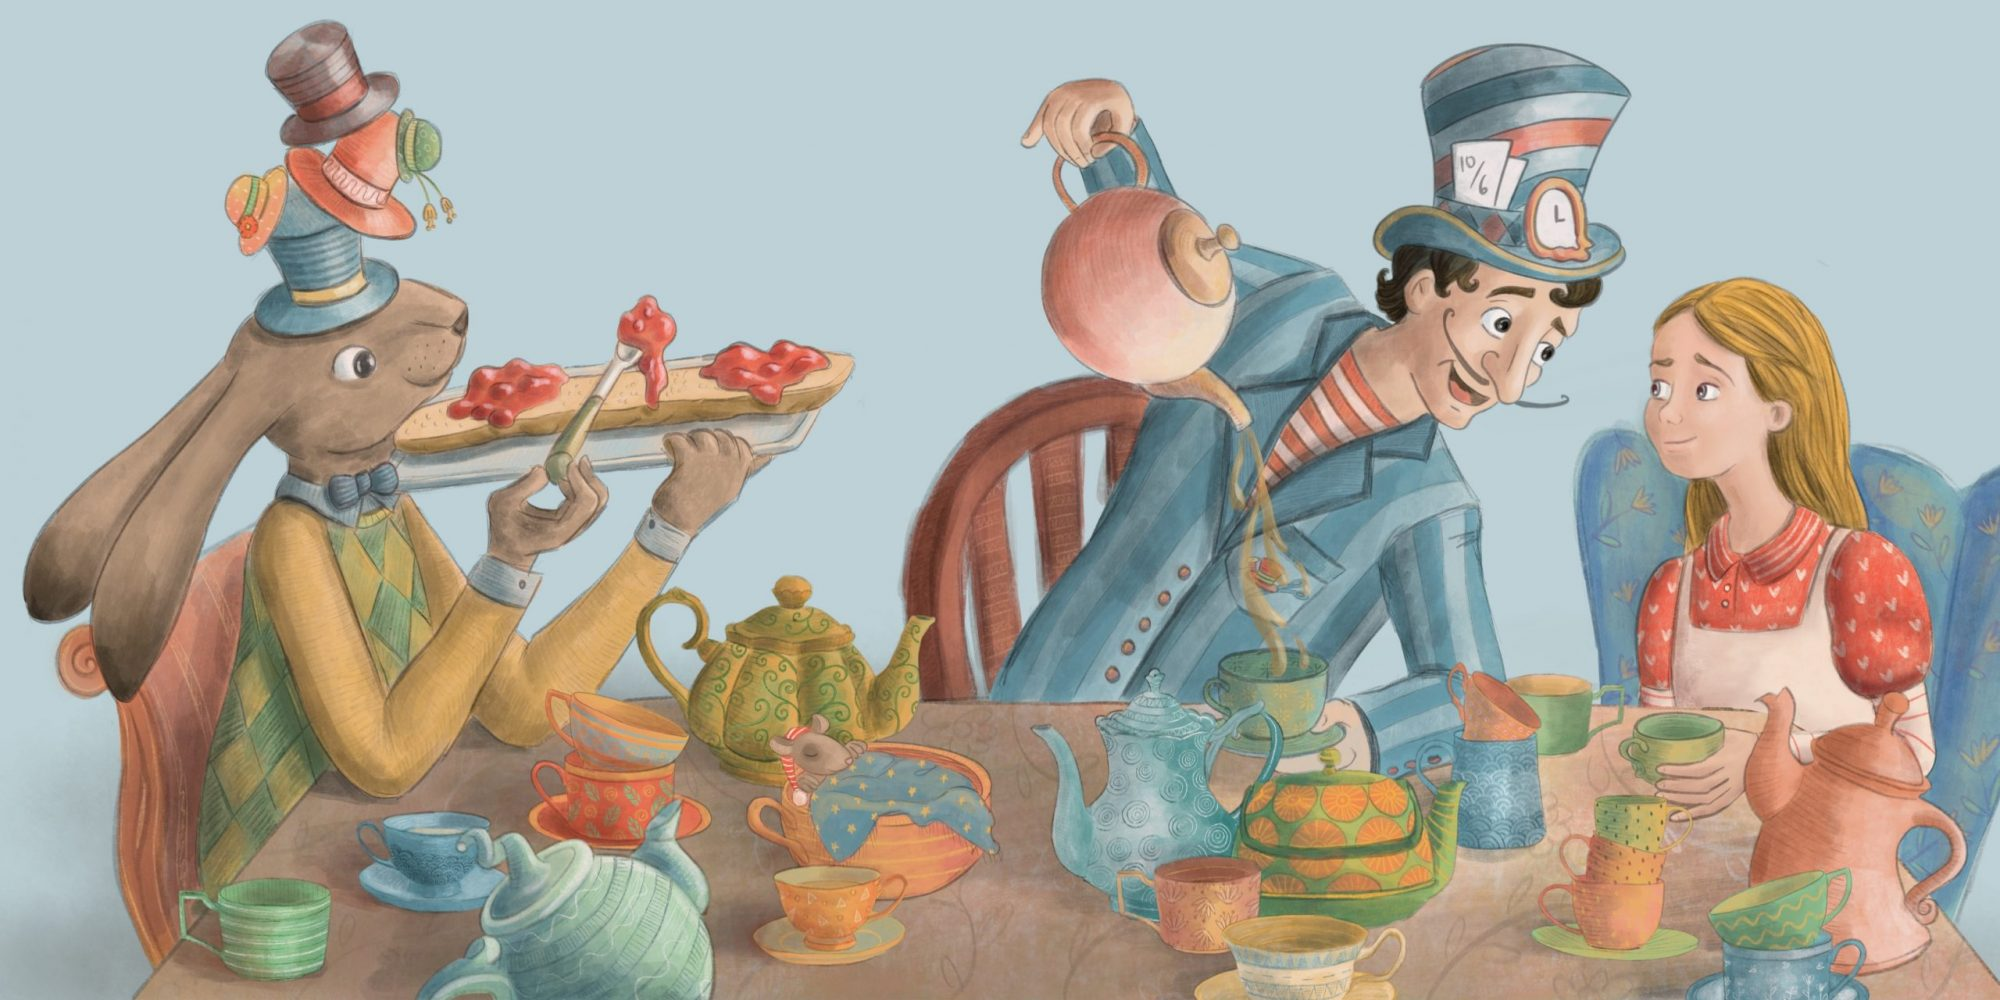 Alice at the Mad Hatter's tea party illustrated by Gabriella Vagnoli